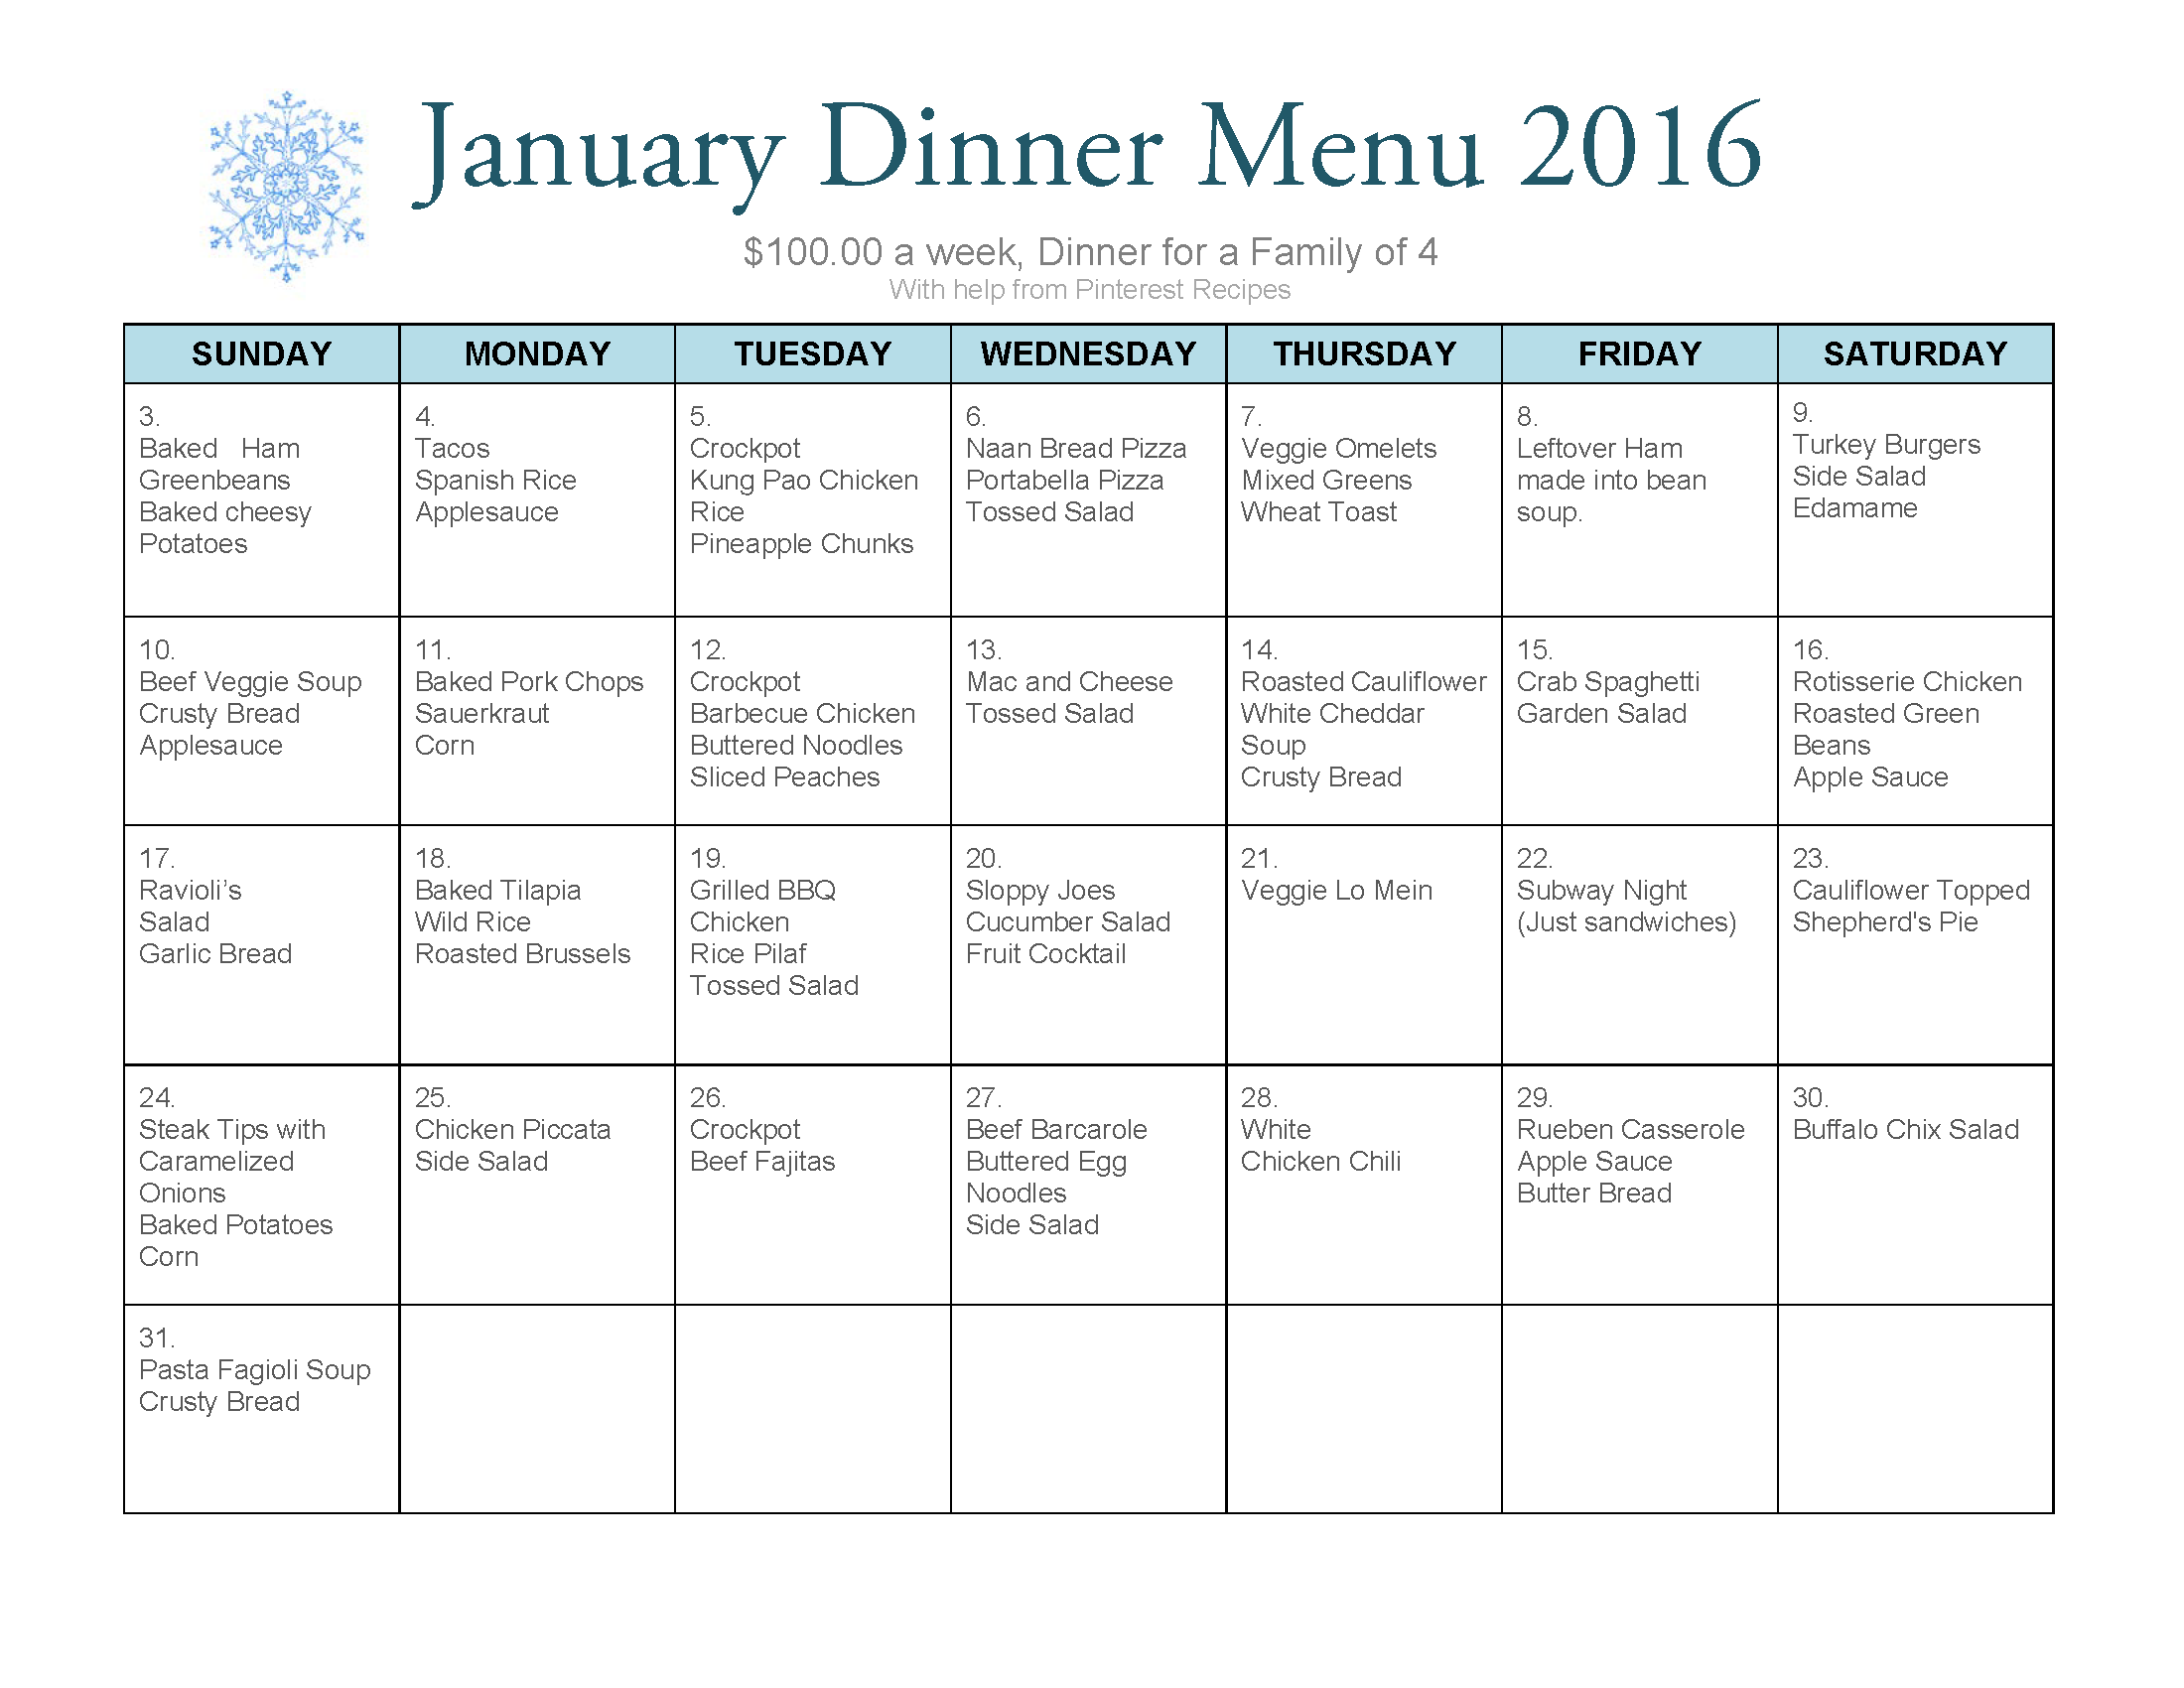 100 a week meal plan for a family of 4 Dinner menu